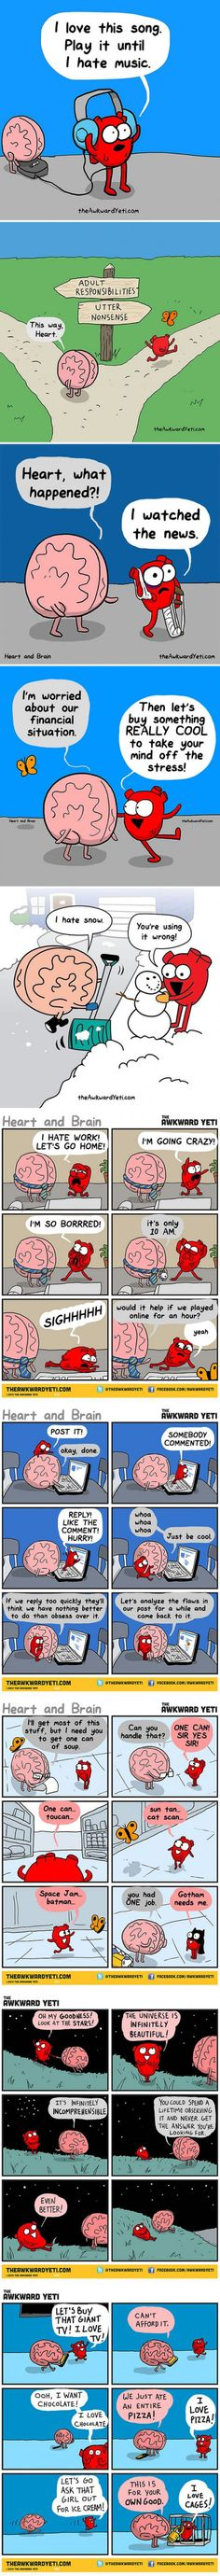 Brain and Heart. So cute! And so me hahahaha